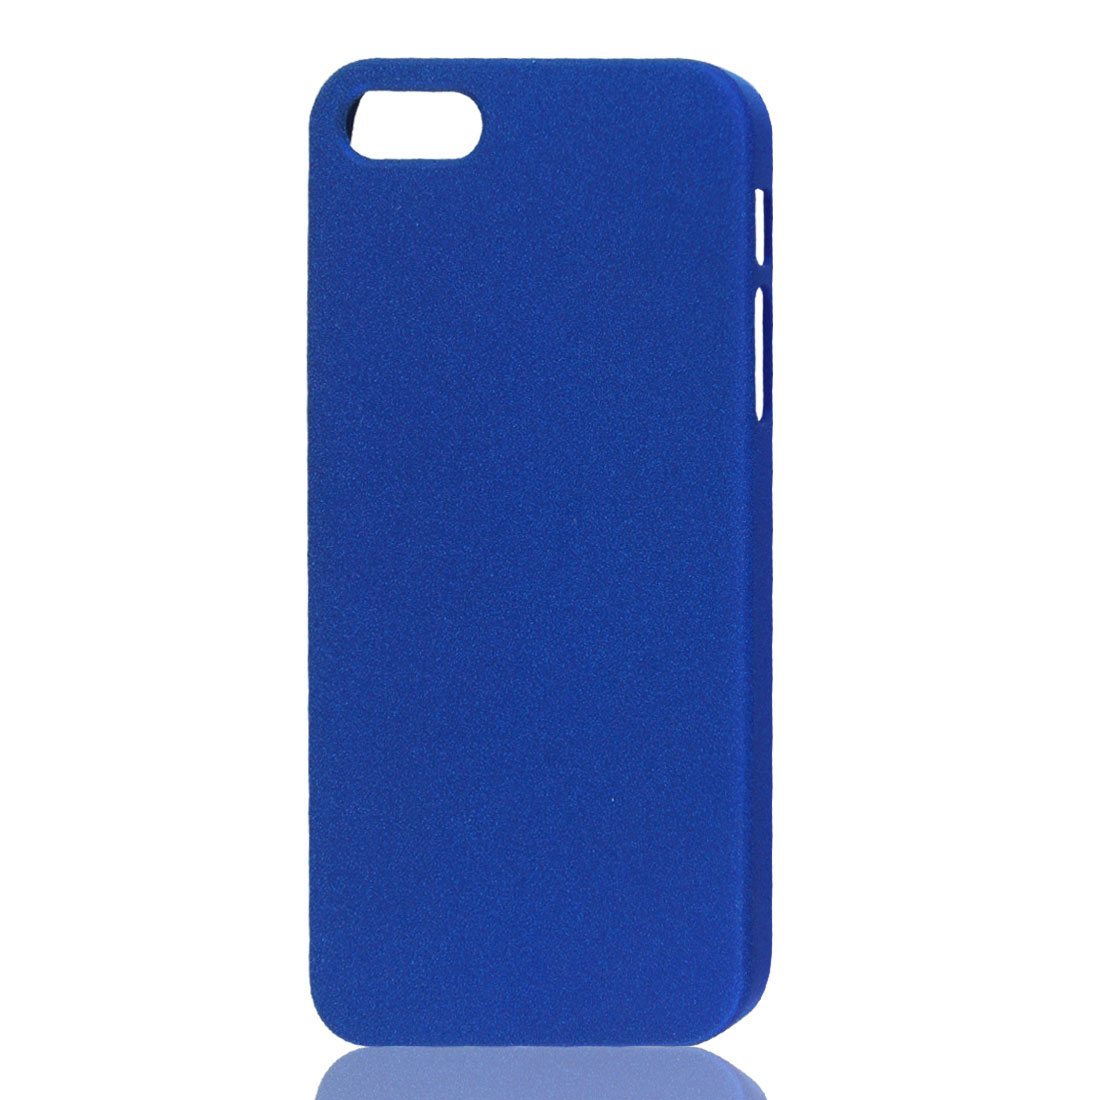 Blue Hard Back Case Cover Protector for Apple iPhone 5 5G 5th Gen